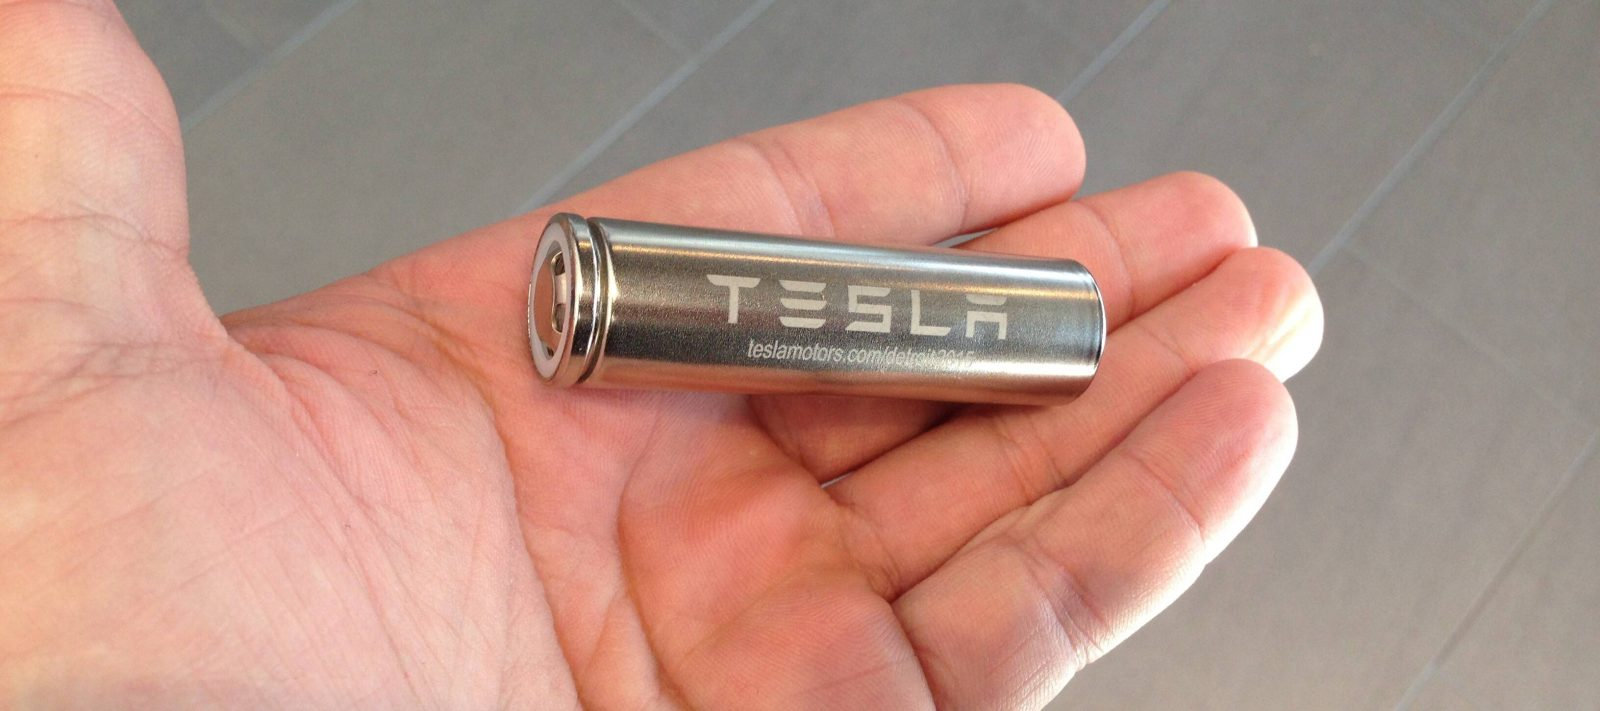 Tesla battery researcher unveils new cell that could last 1 million miles in 'robot taxis'